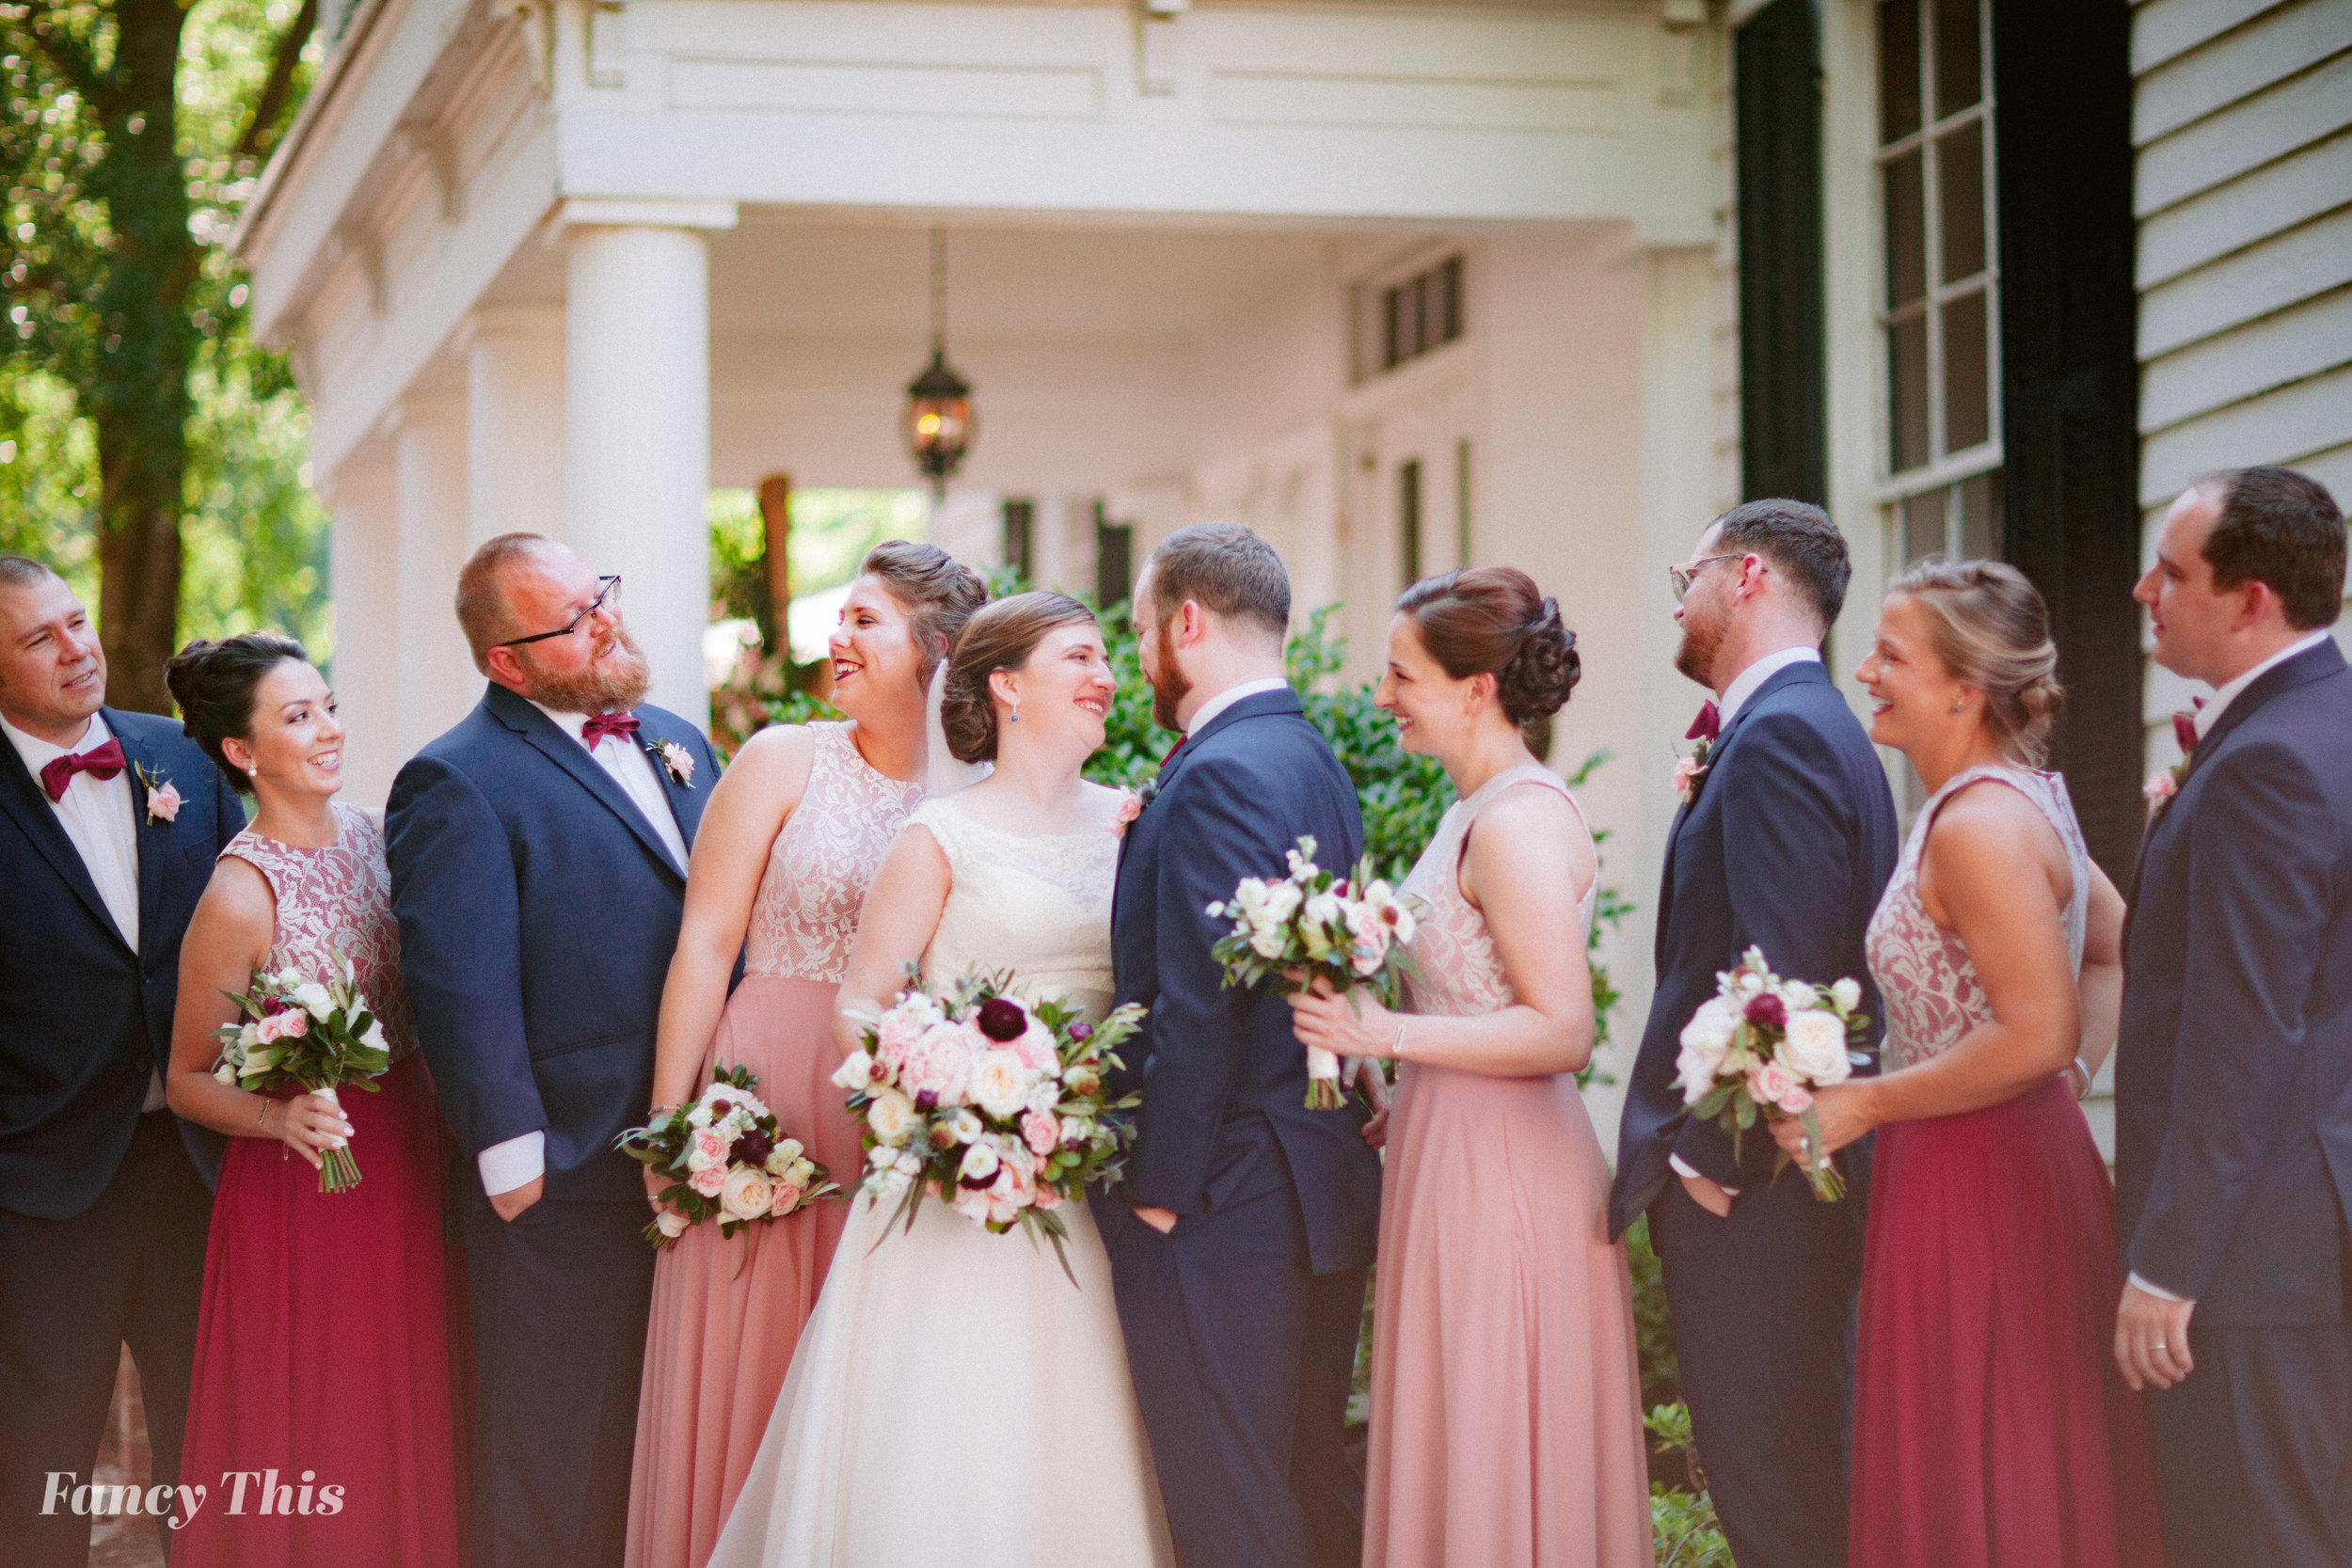 themimshousewedding_summerweddinginhollysprings_fancythis-358.jpg